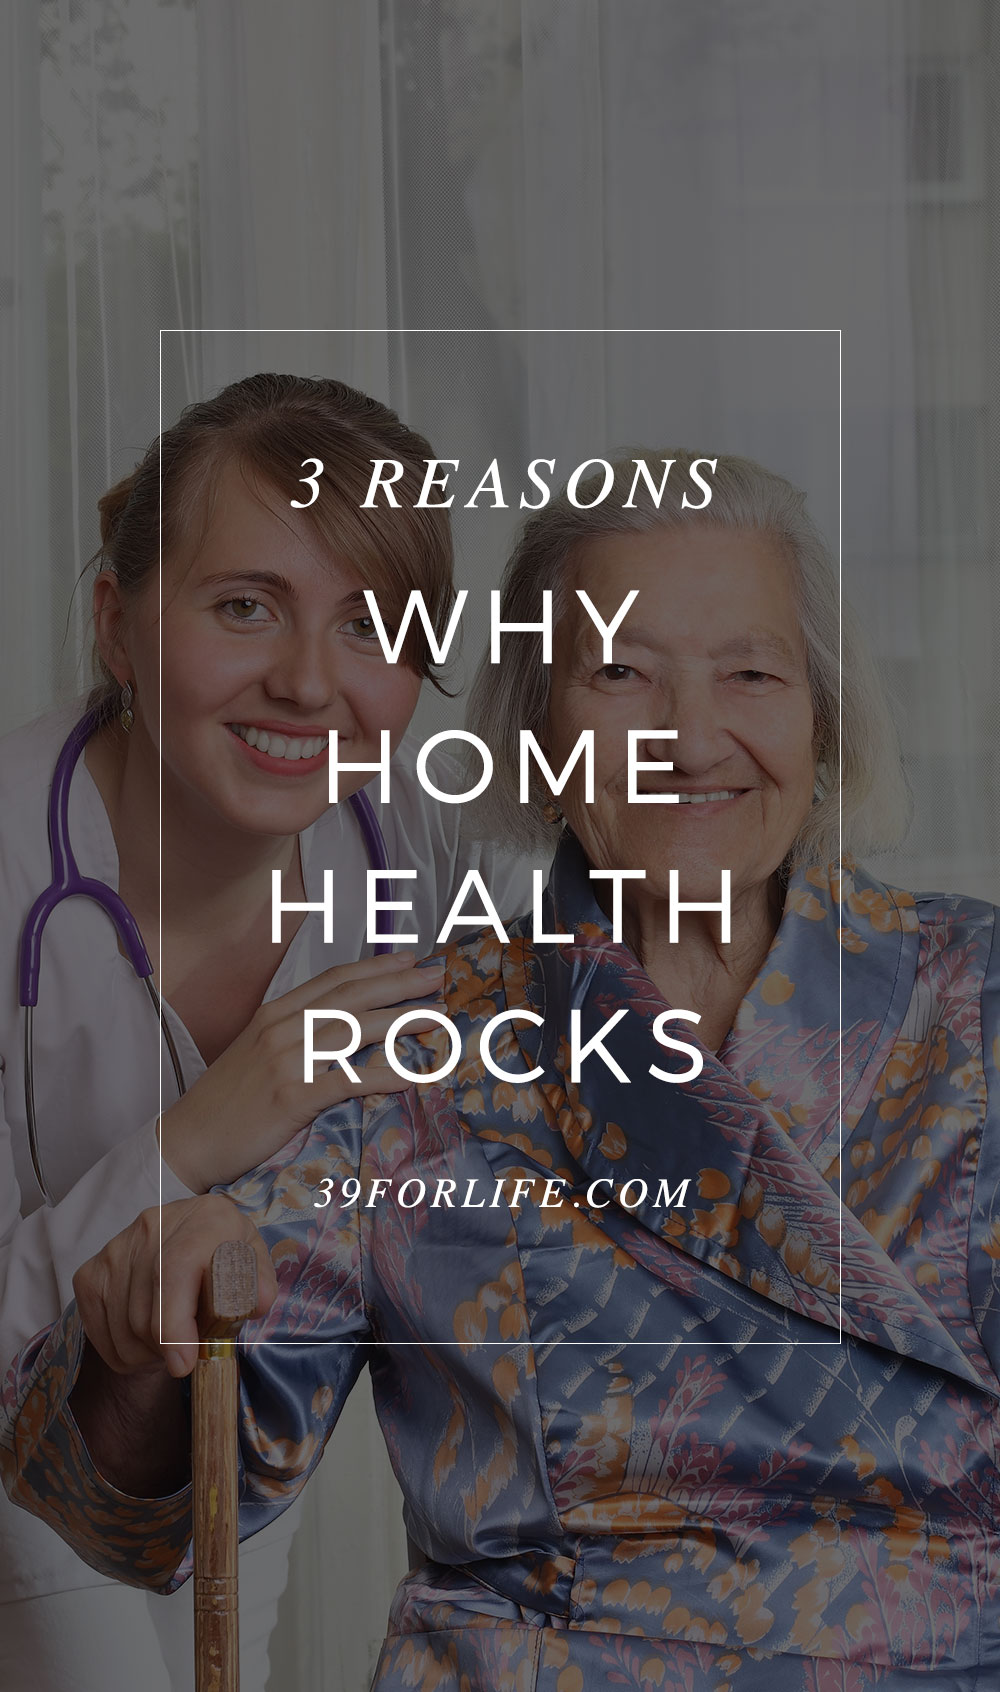 Today, seniors and their families have many options for good healthcare. Here are three reasons why you should consider home health care for your loved one.